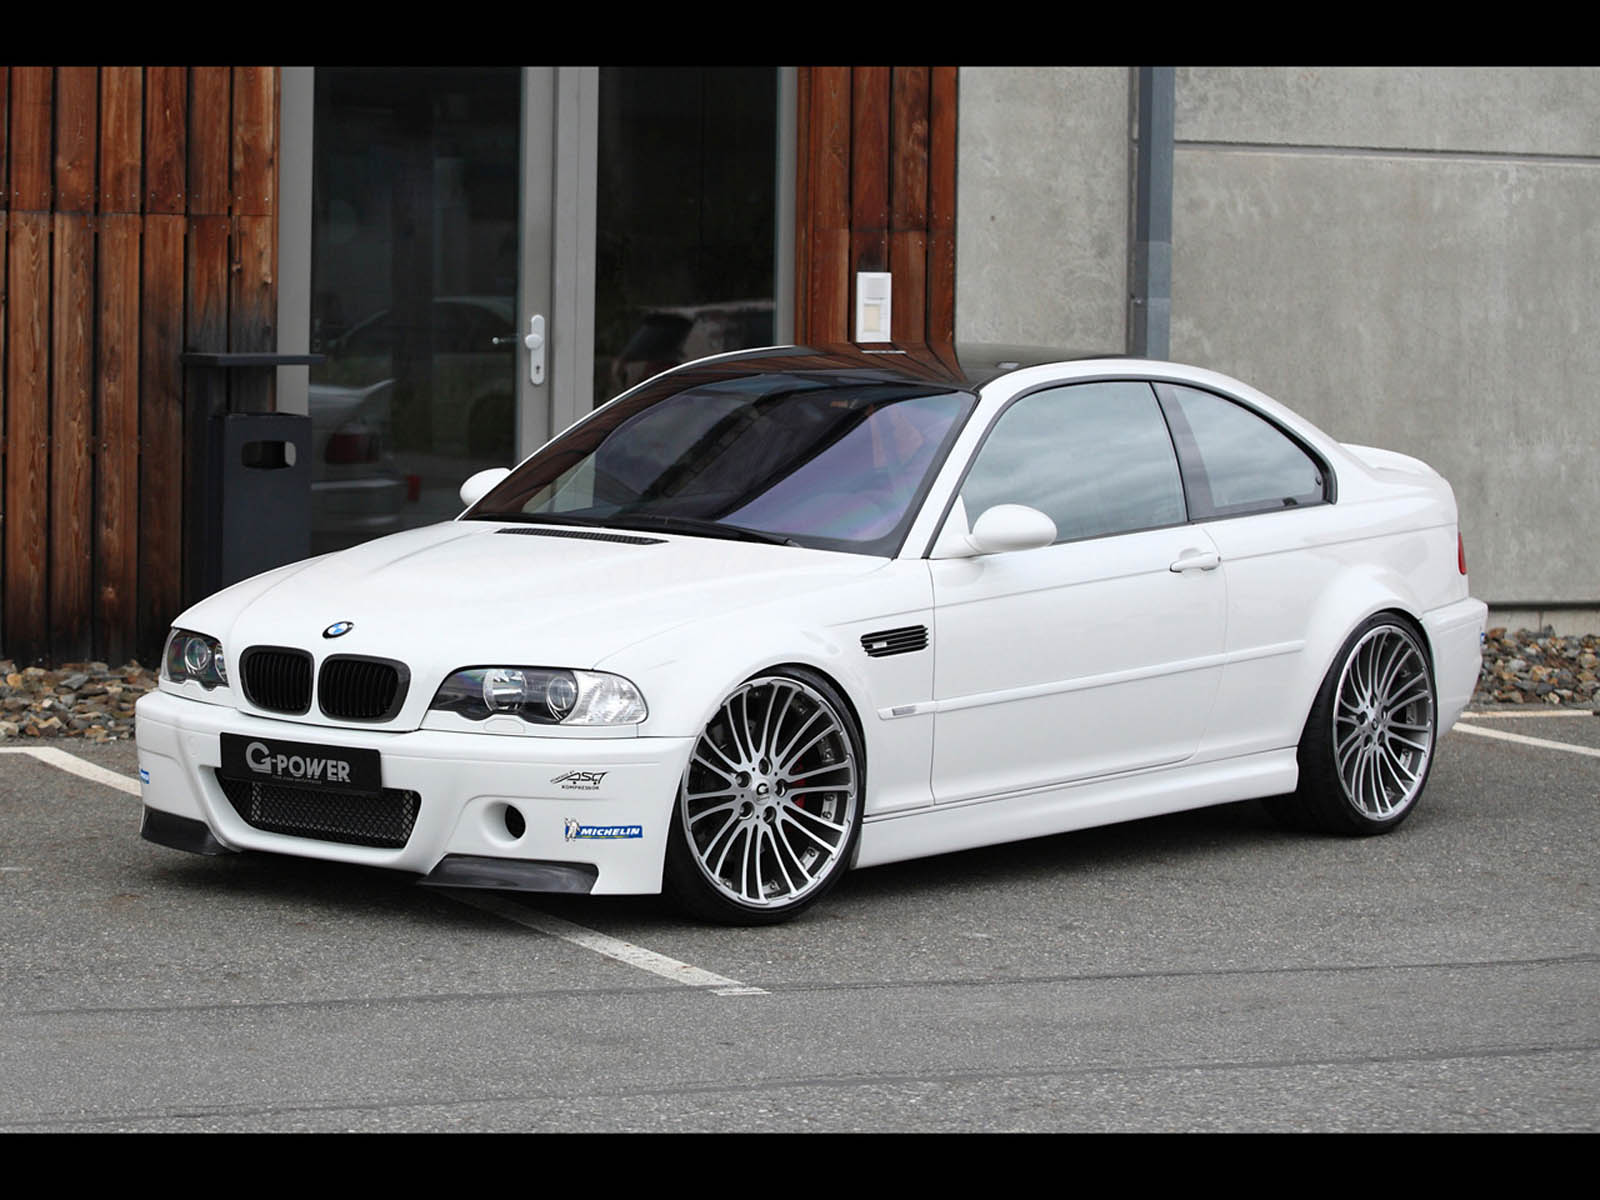 bmw m3 e46 csl car wallpapers. Black Bedroom Furniture Sets. Home Design Ideas